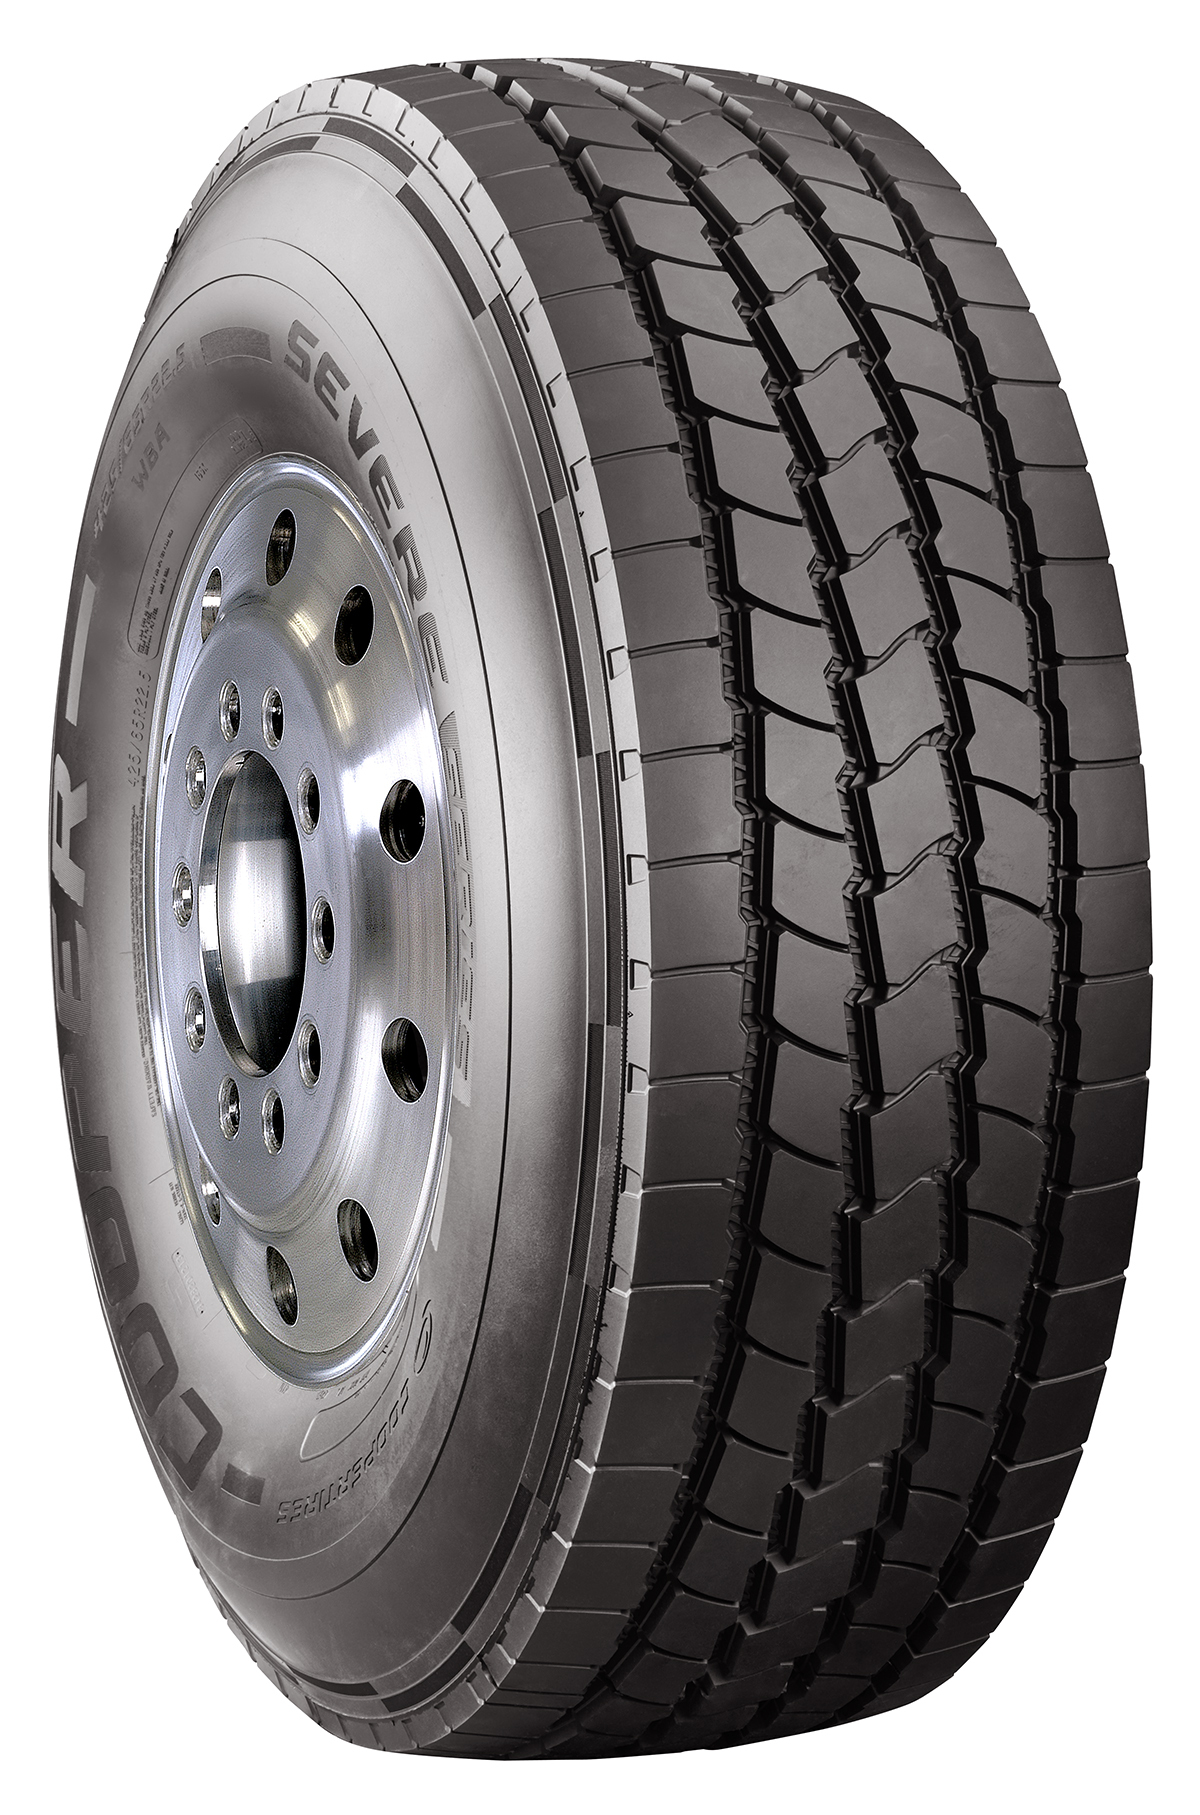 Cooper's new SEVERE Series WBA commercial truck tire provides long miles to removal while handling the harsh operating conditions found in construction truck applications.